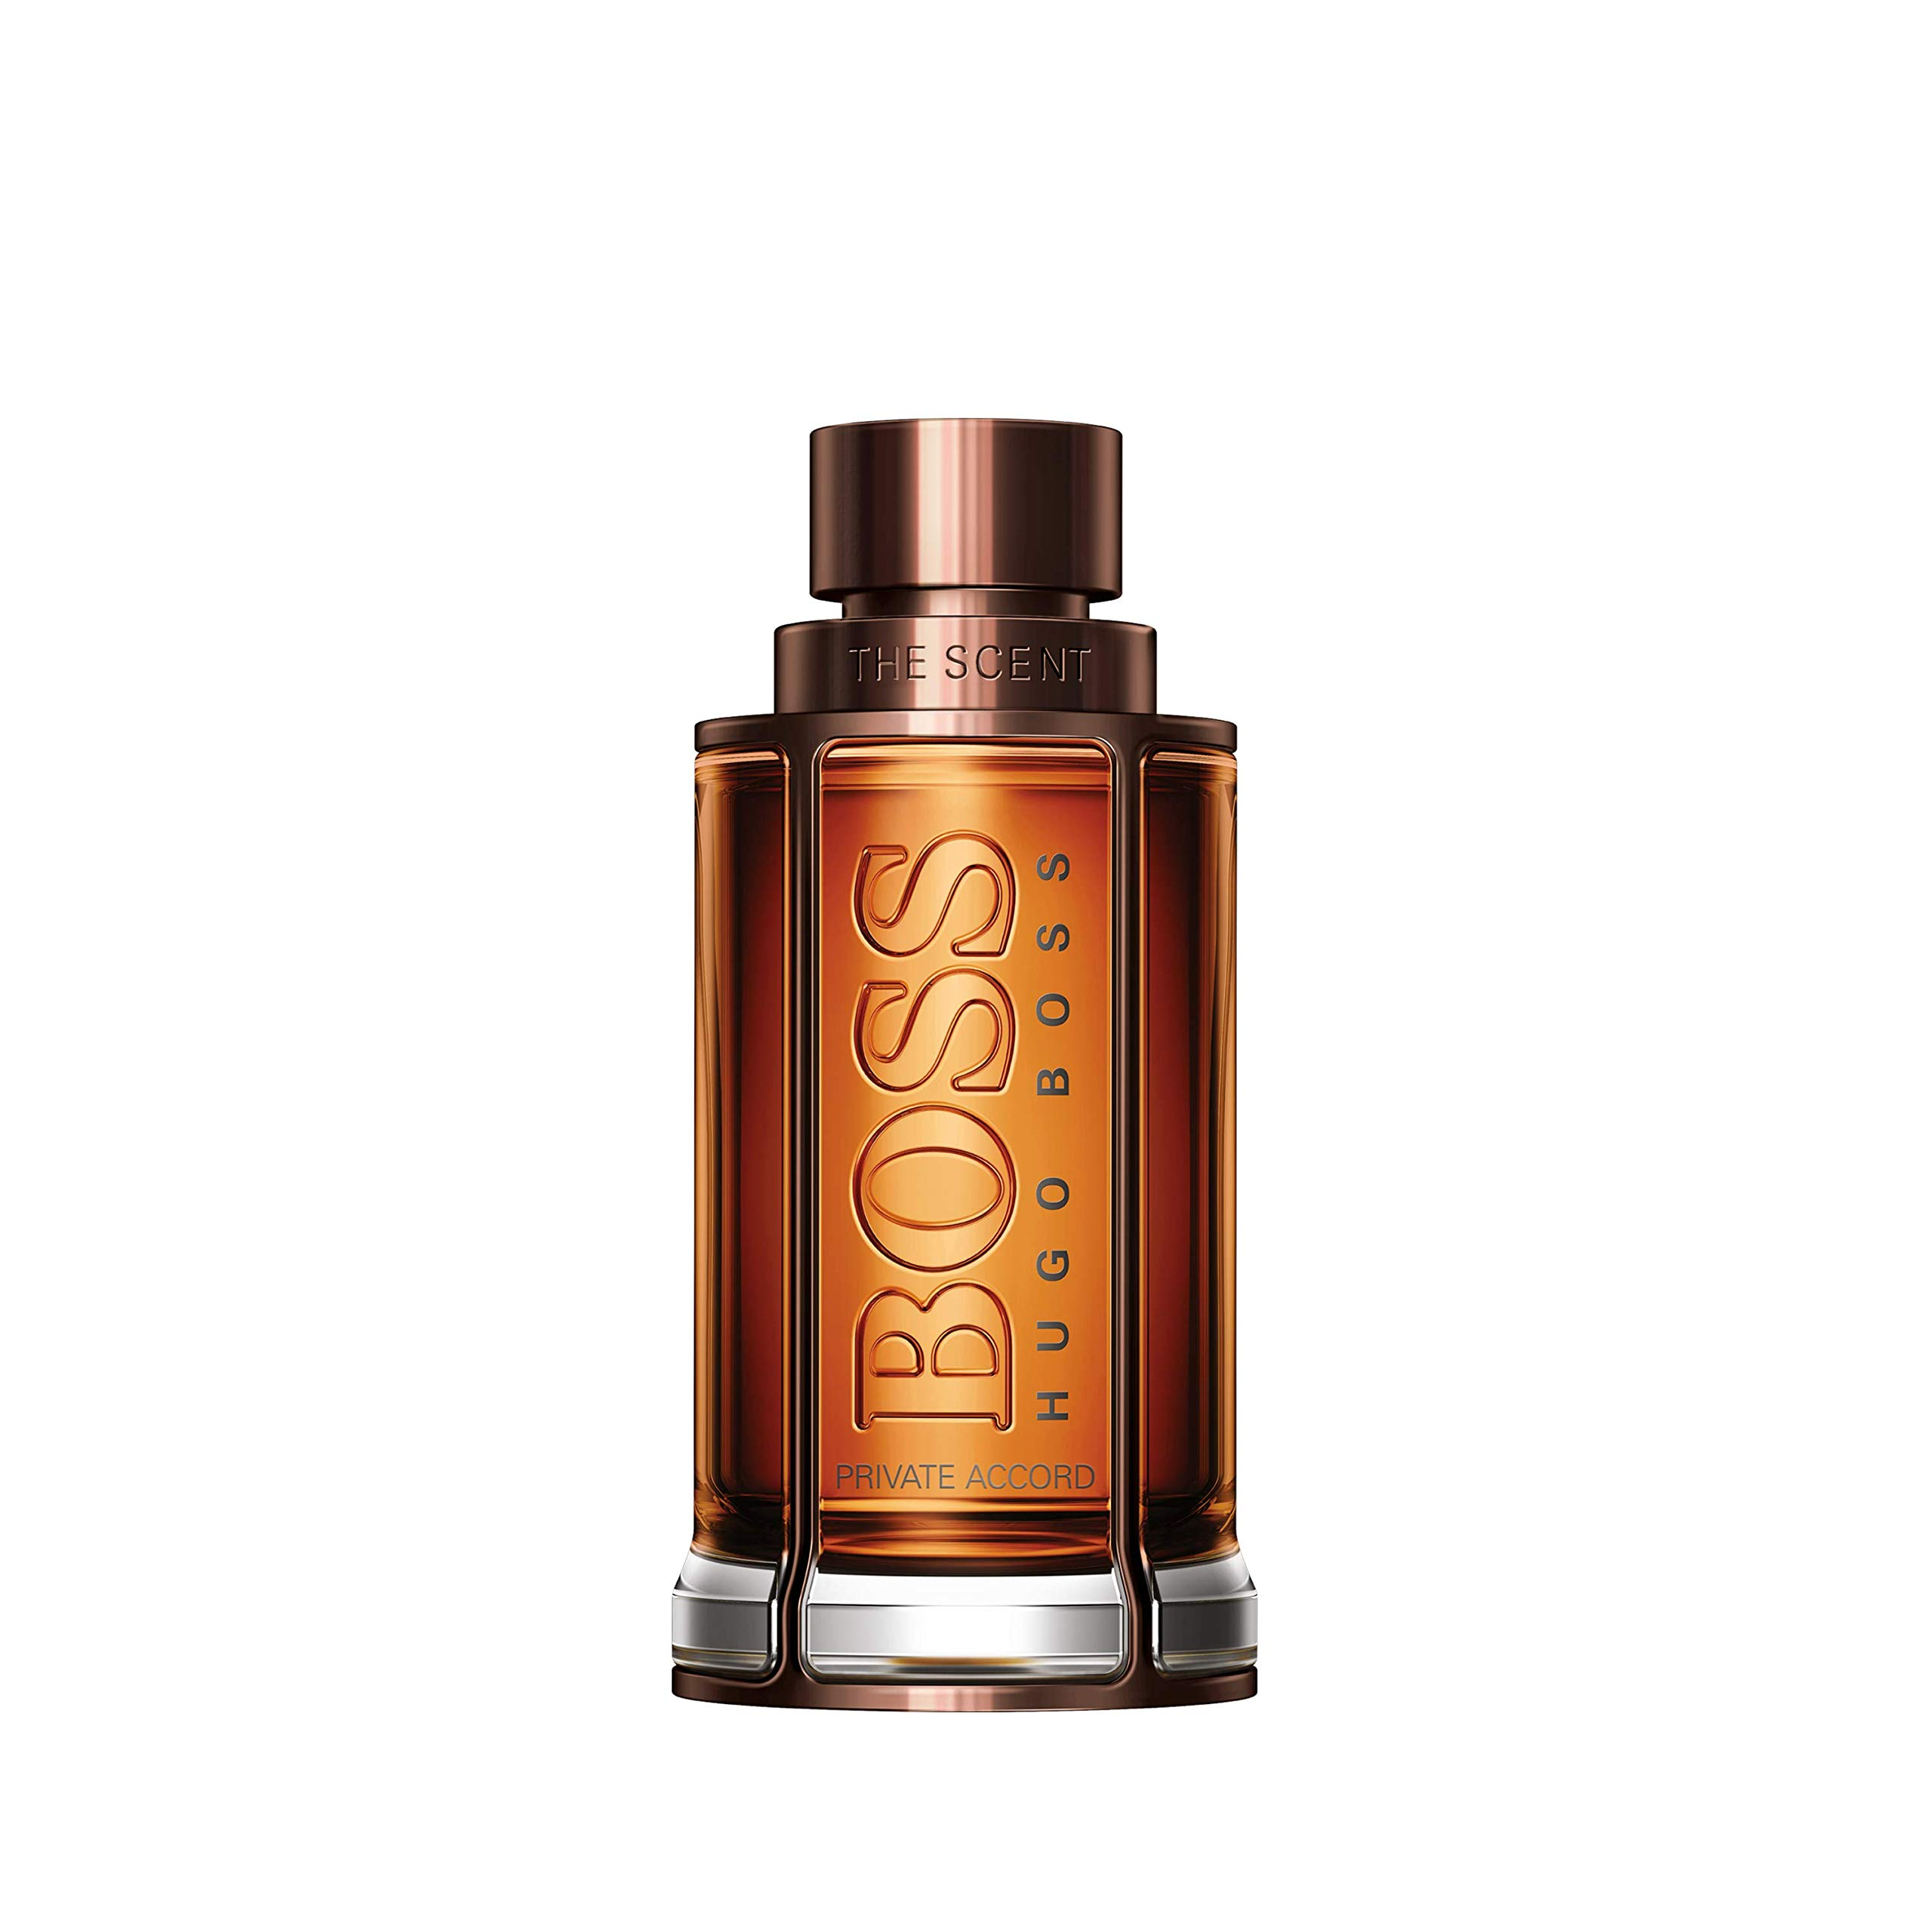 BOSS The Scent Private Accord for Him Eau de Toilette 50ml - Fragrance for Men, 3.3 FL. OZ. by Hugo Boss